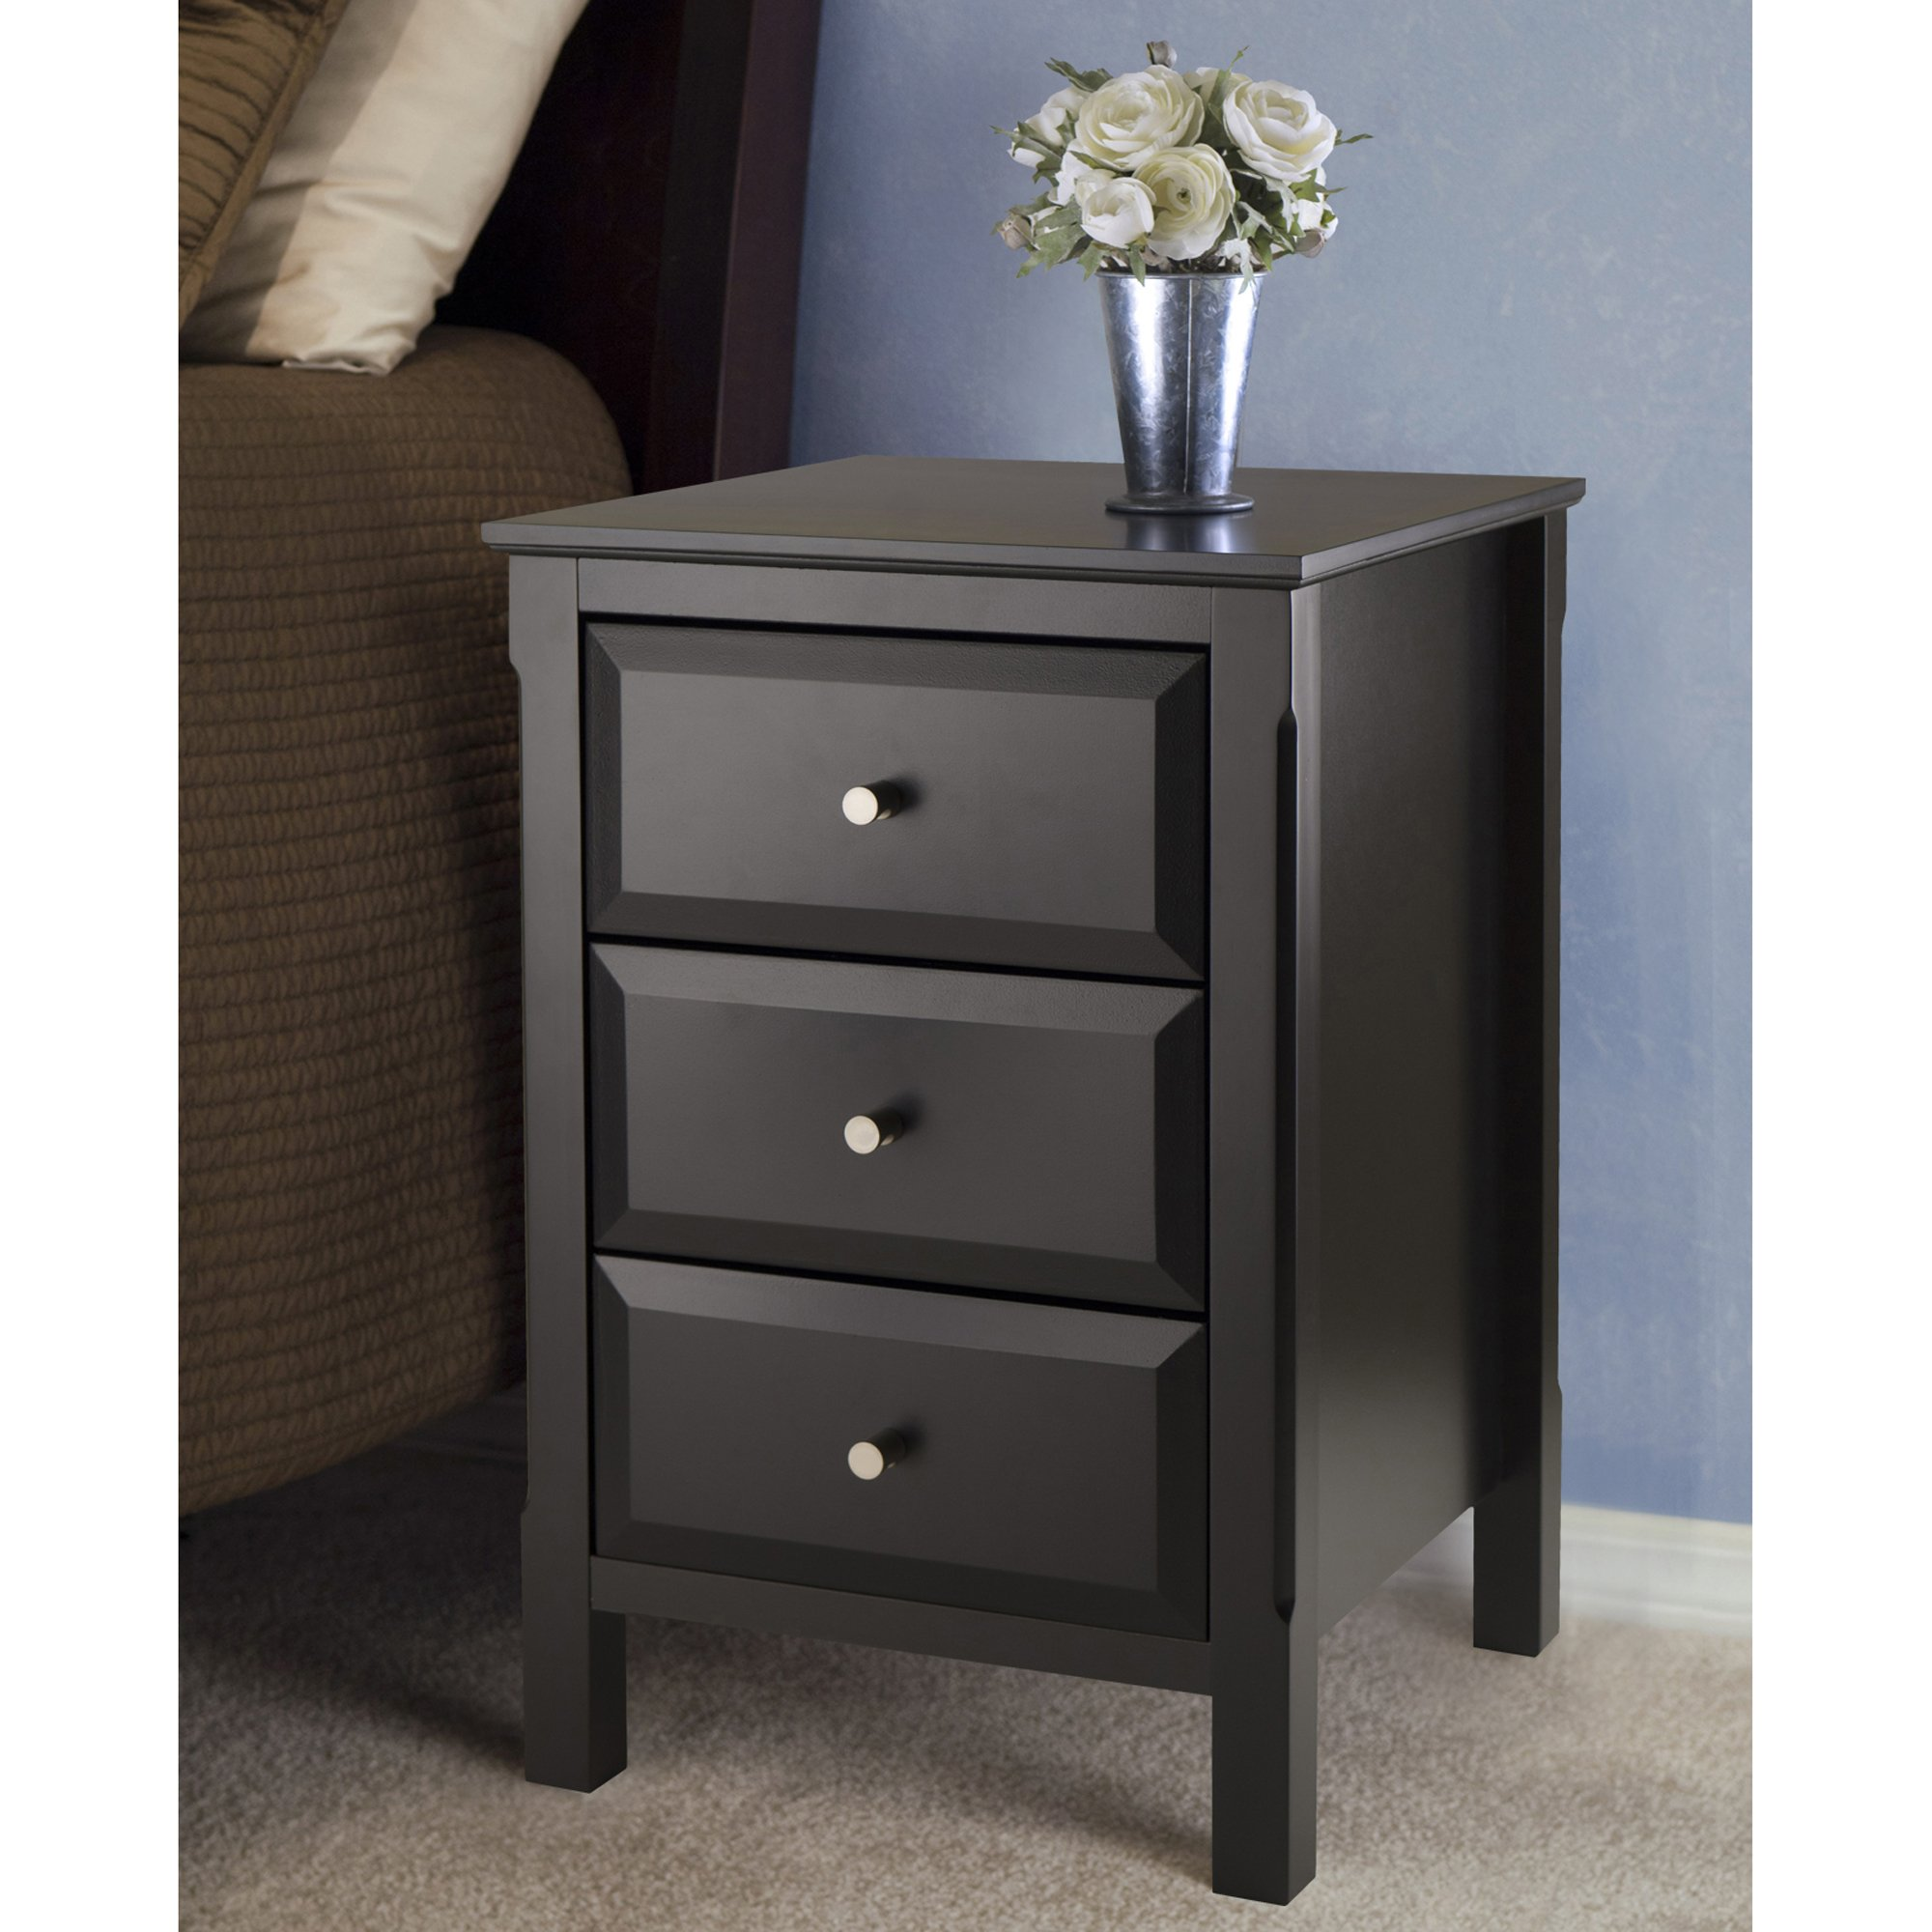 winsome wood transitional black composite accent table timmy nightstand side dimensions mosaic end brown bedside raw furniture modern teak outdoor round glass top marble corner